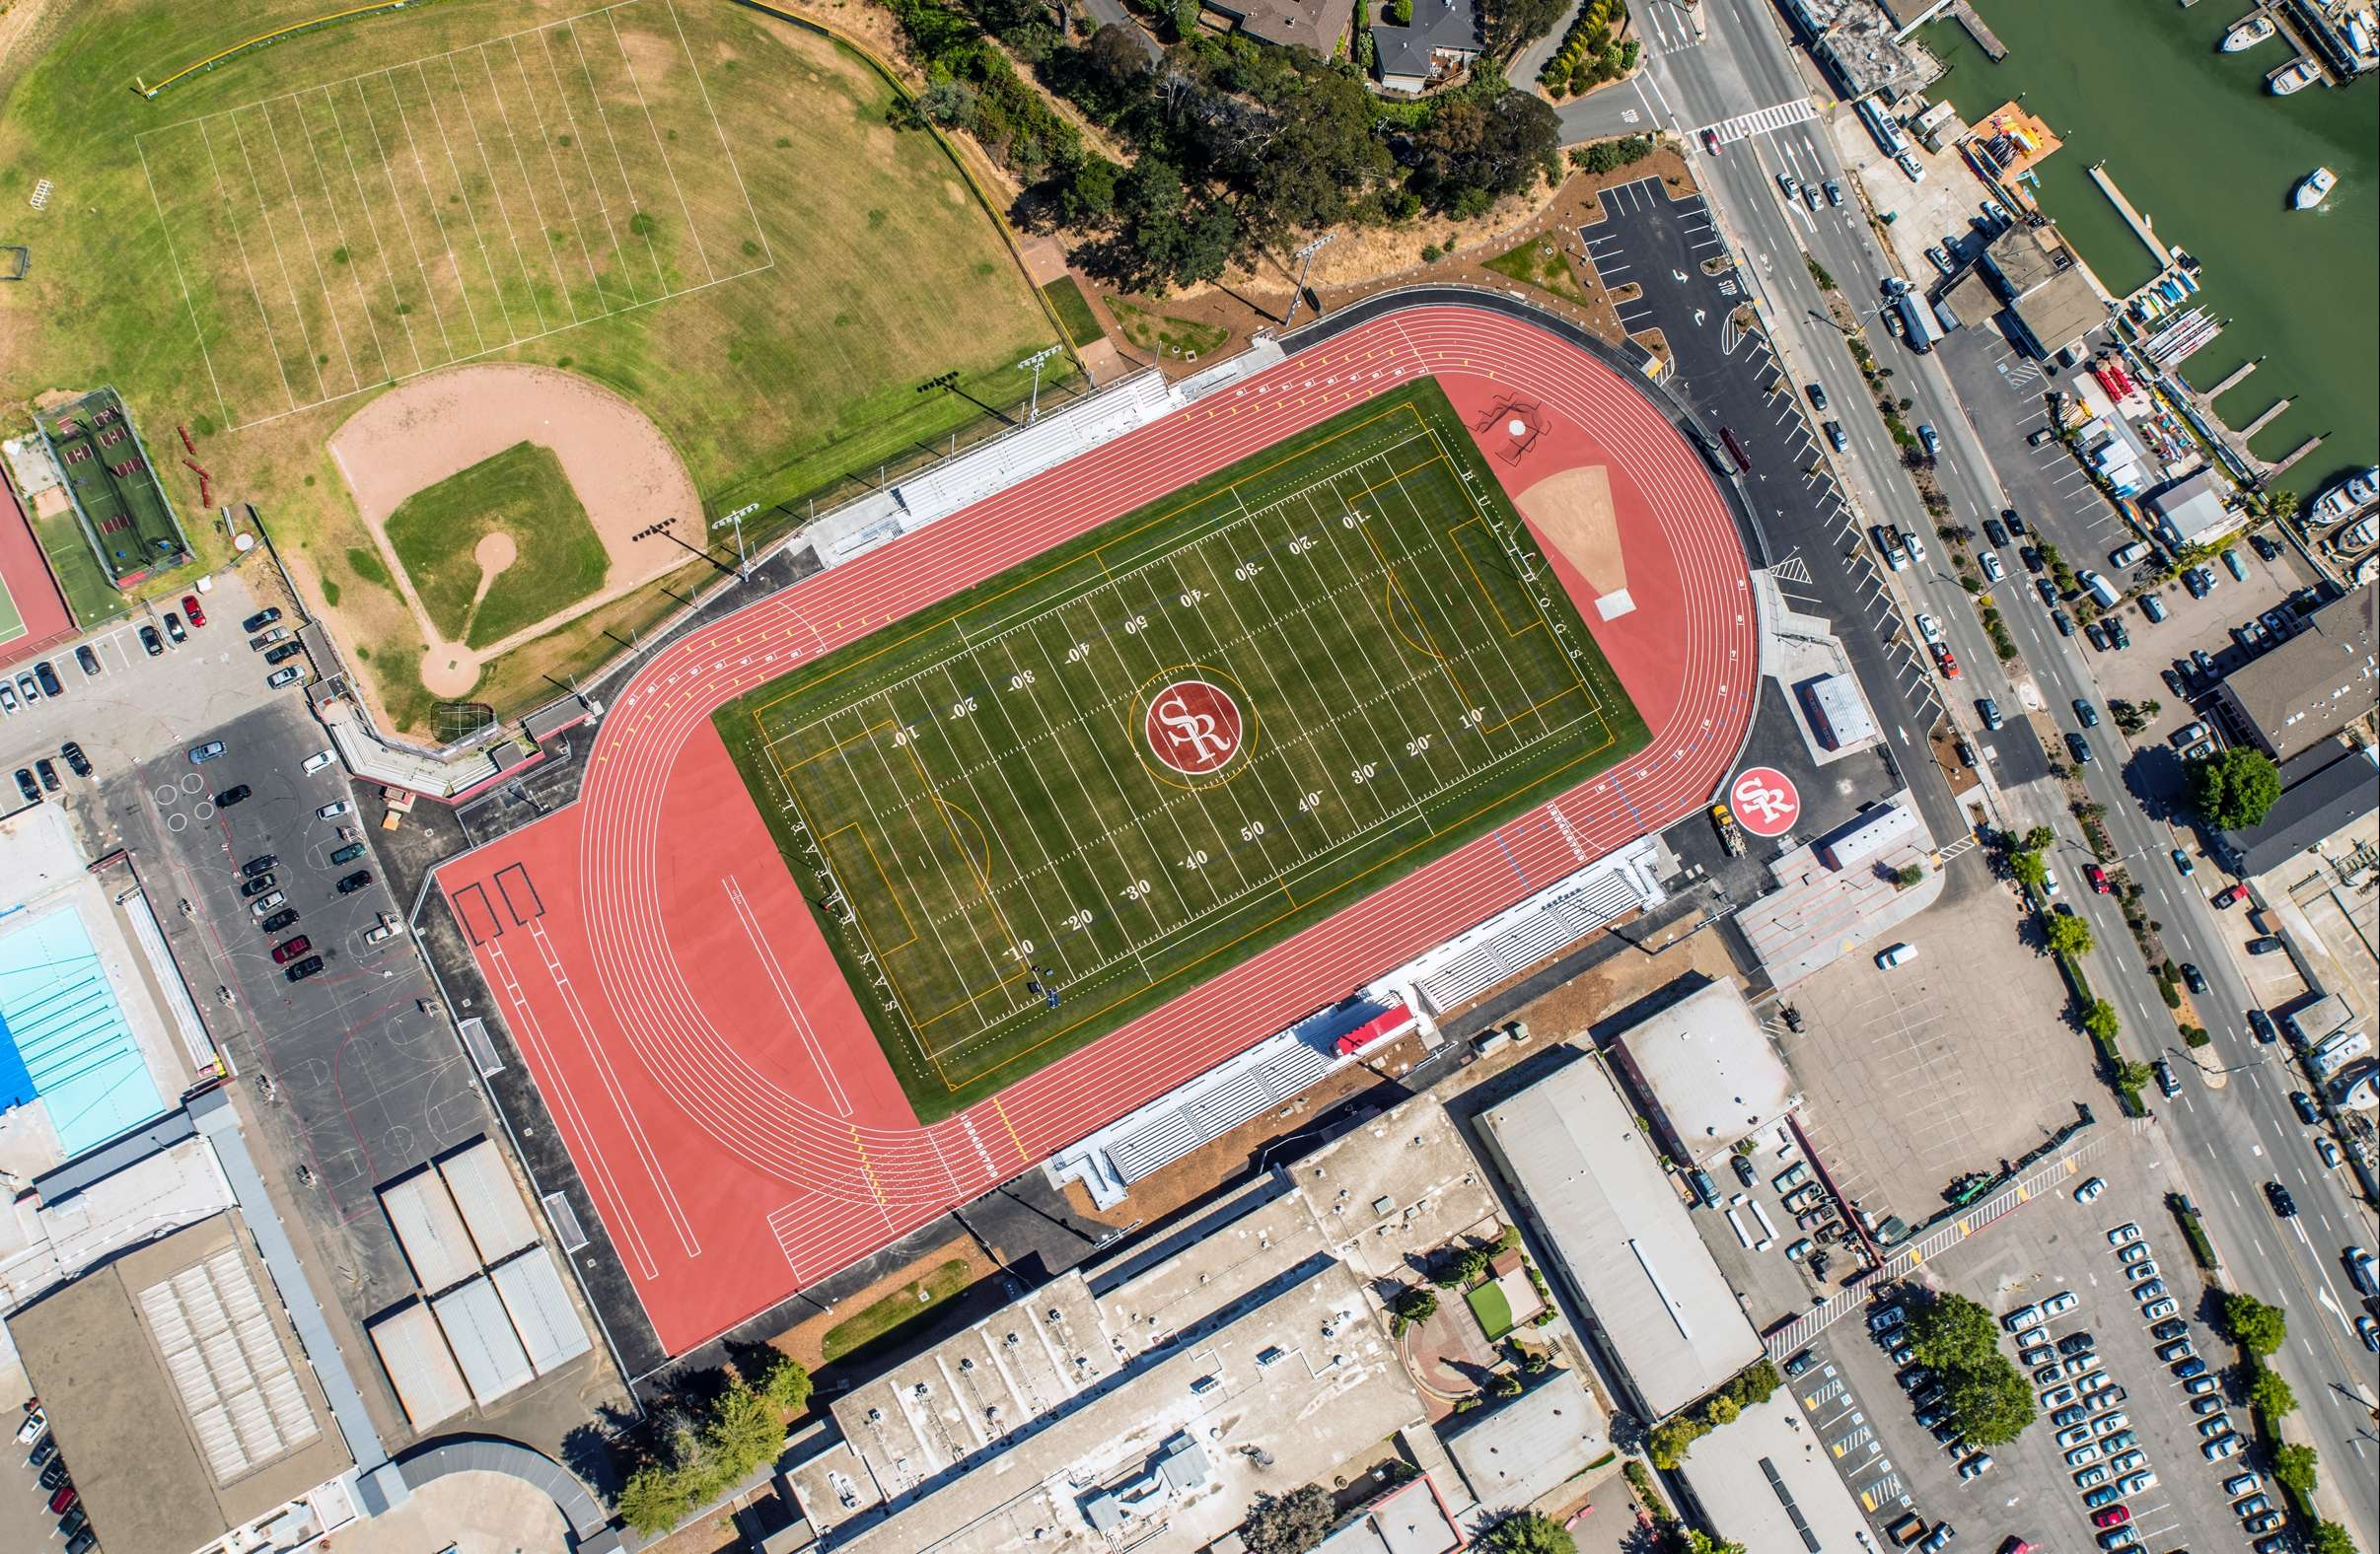 San Rafael High School Stadium